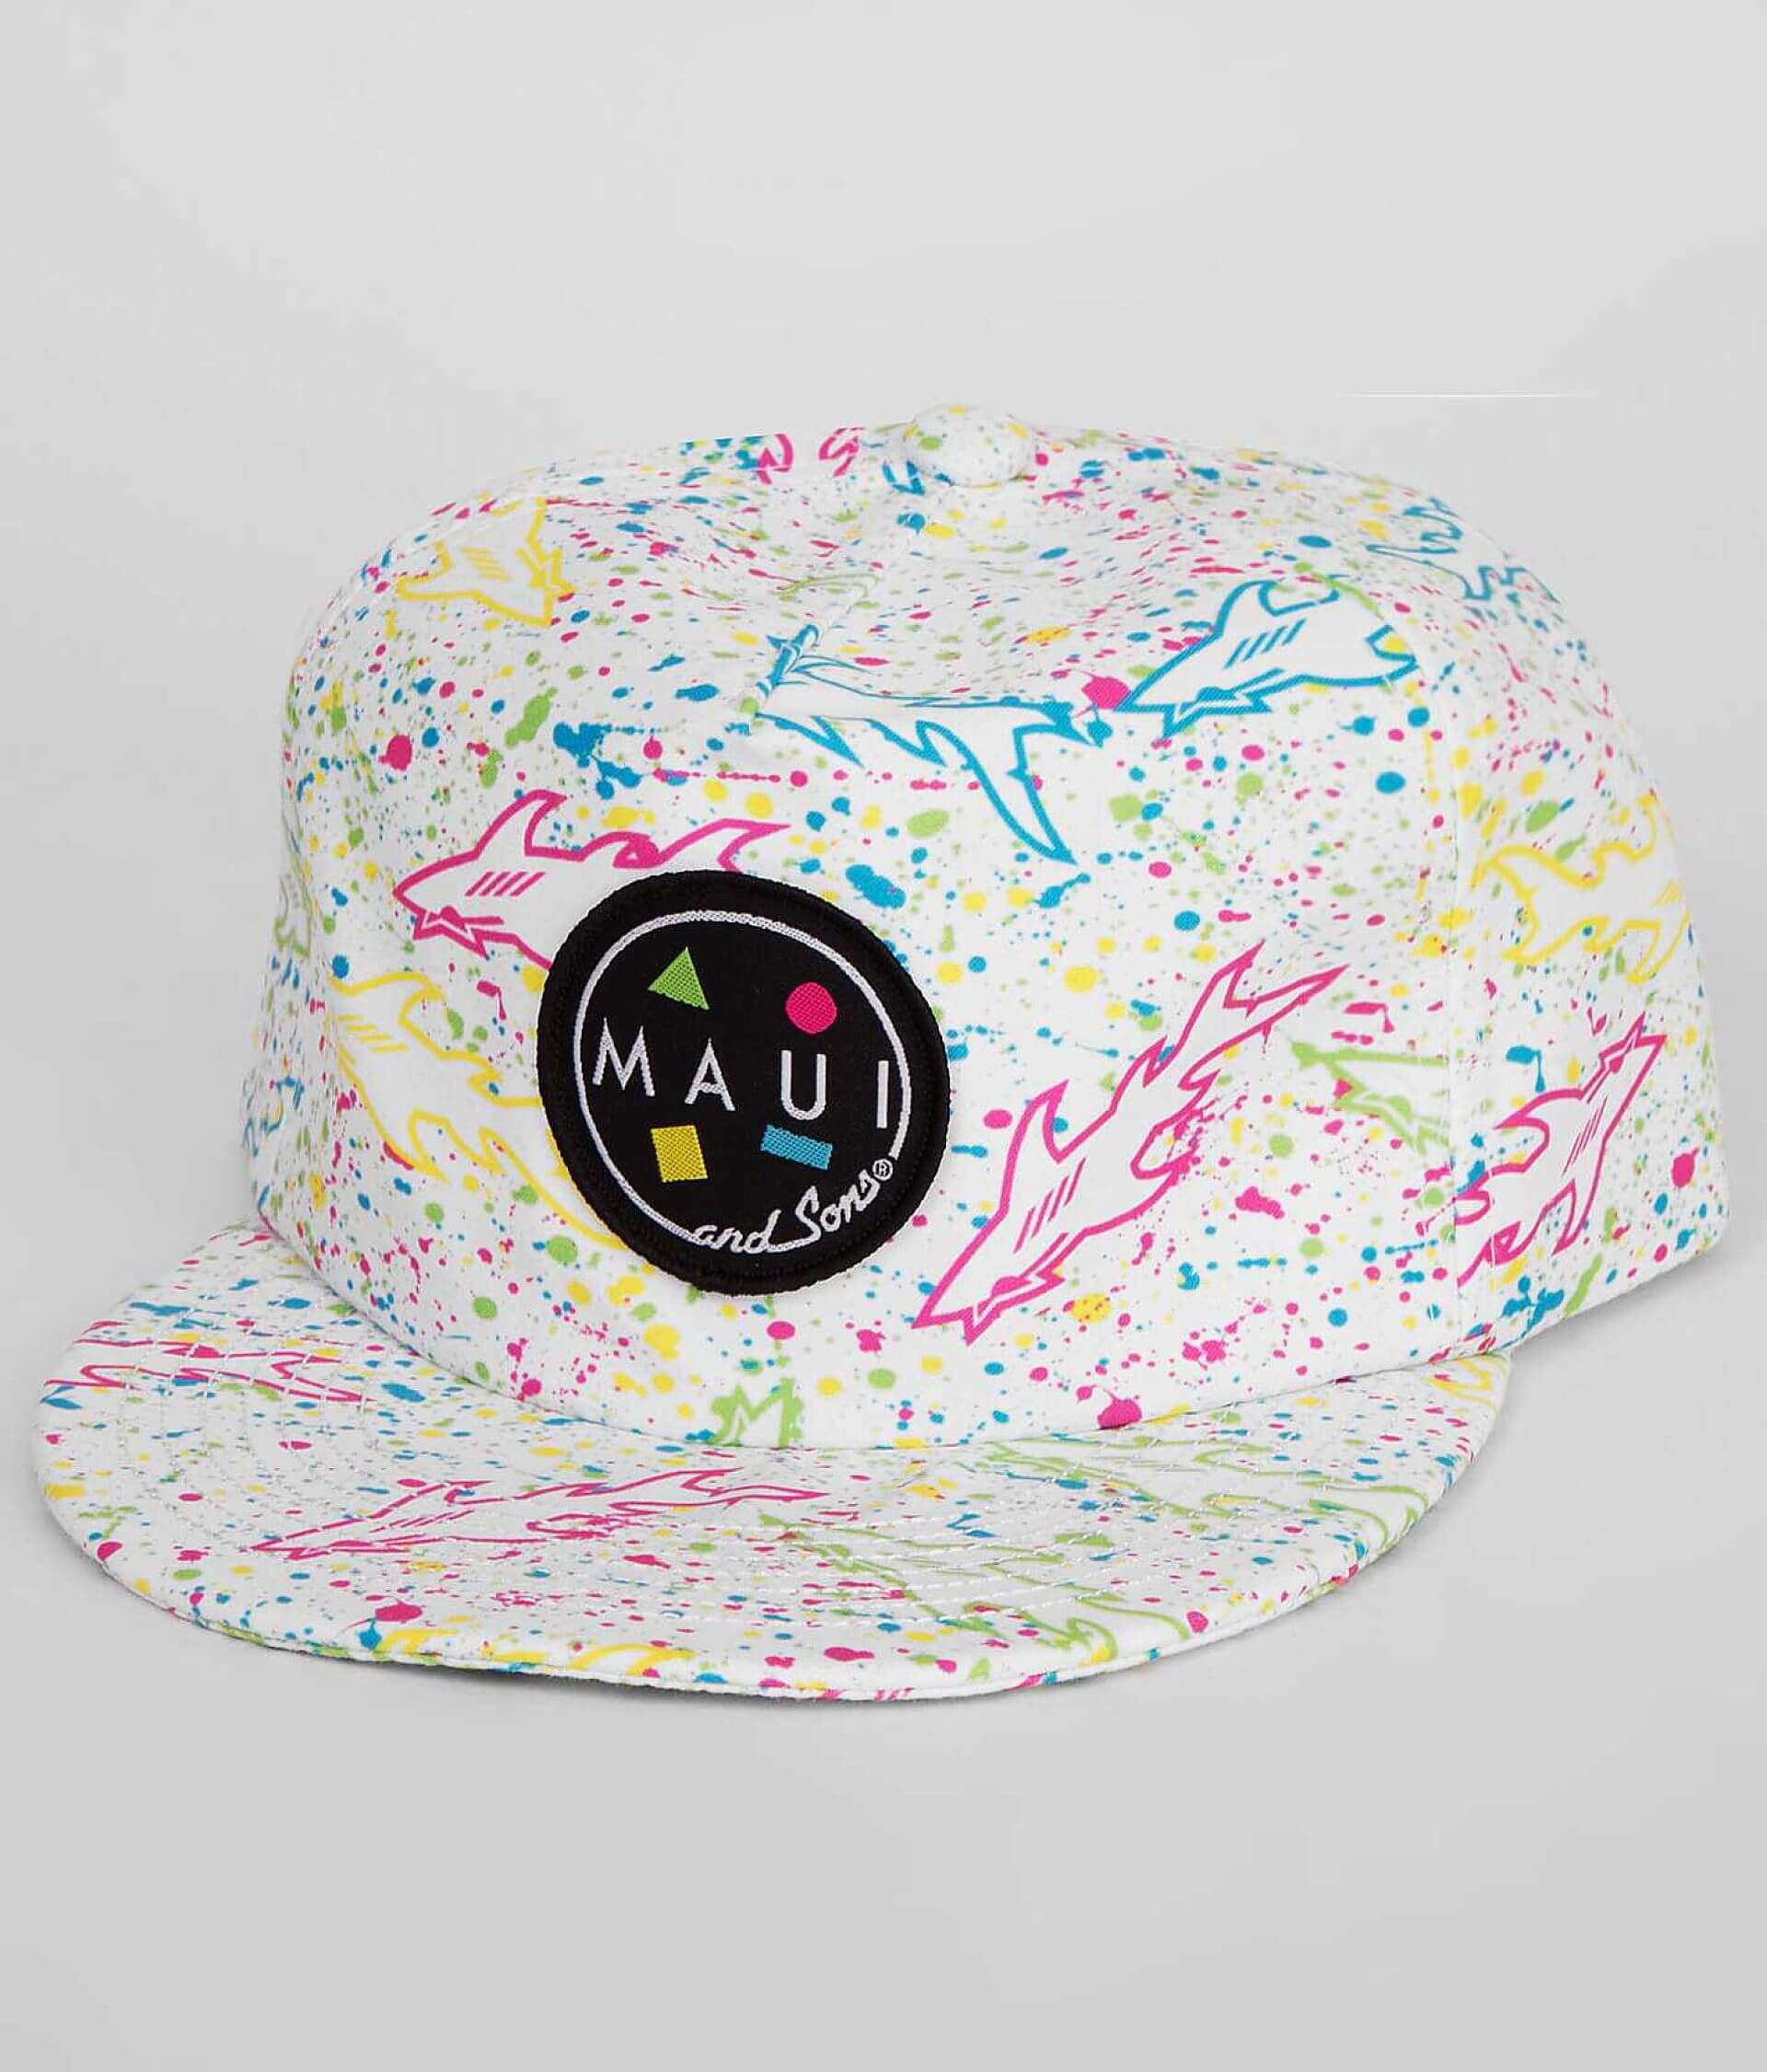 0bc10ad0567a4a Maui & Sons Splatter Shark Hat - Men's Hats in White | Buckle